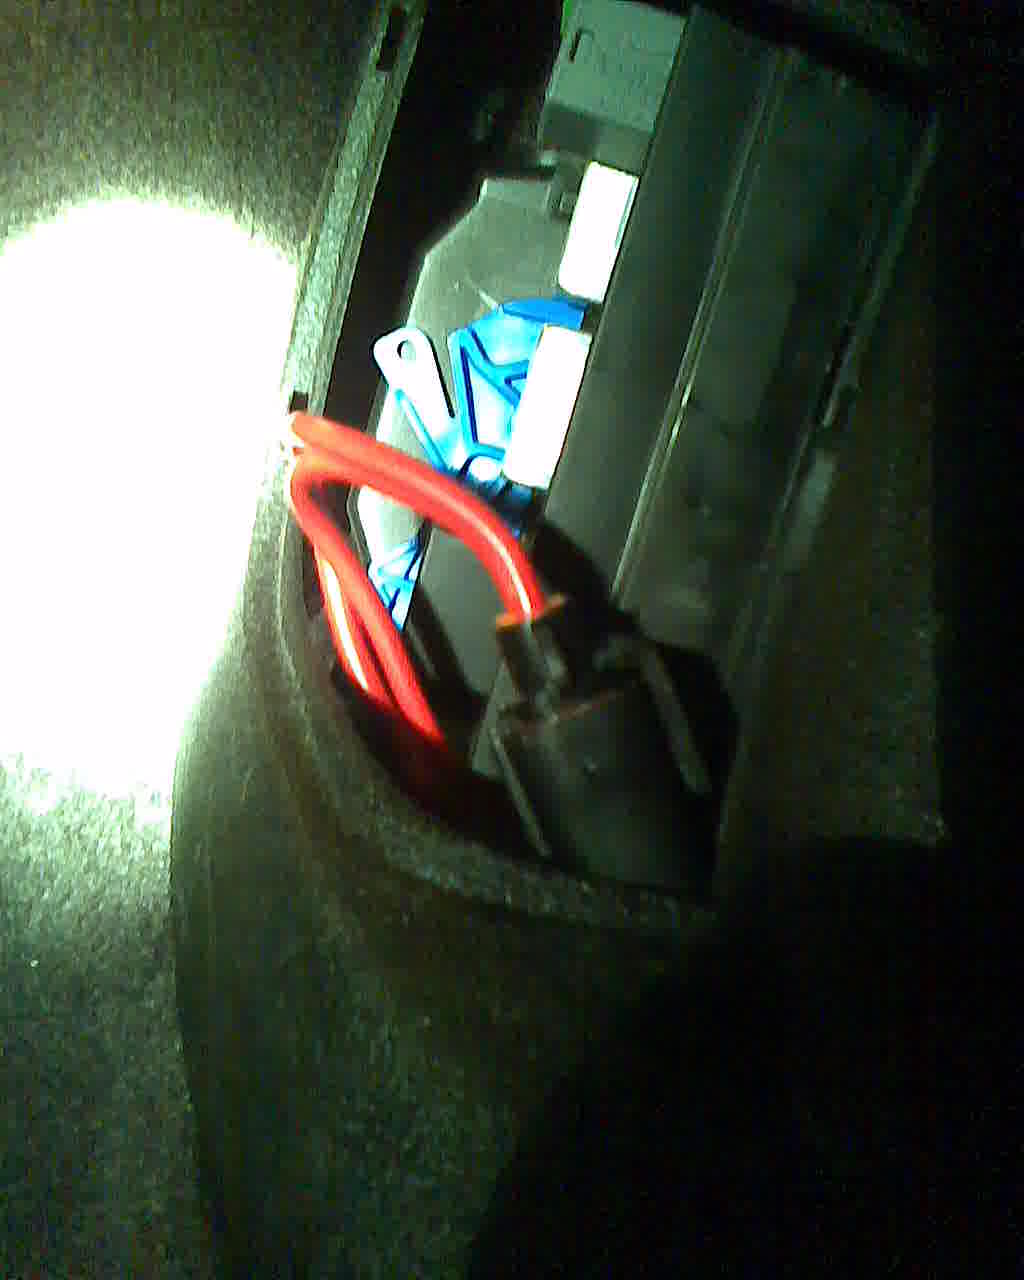 2763d1297874126 rear defroster burnt wire fix write up car pulg 3 rear defroster burnt wire fix write up chevy impala forums Car Rear Defrost at n-0.co